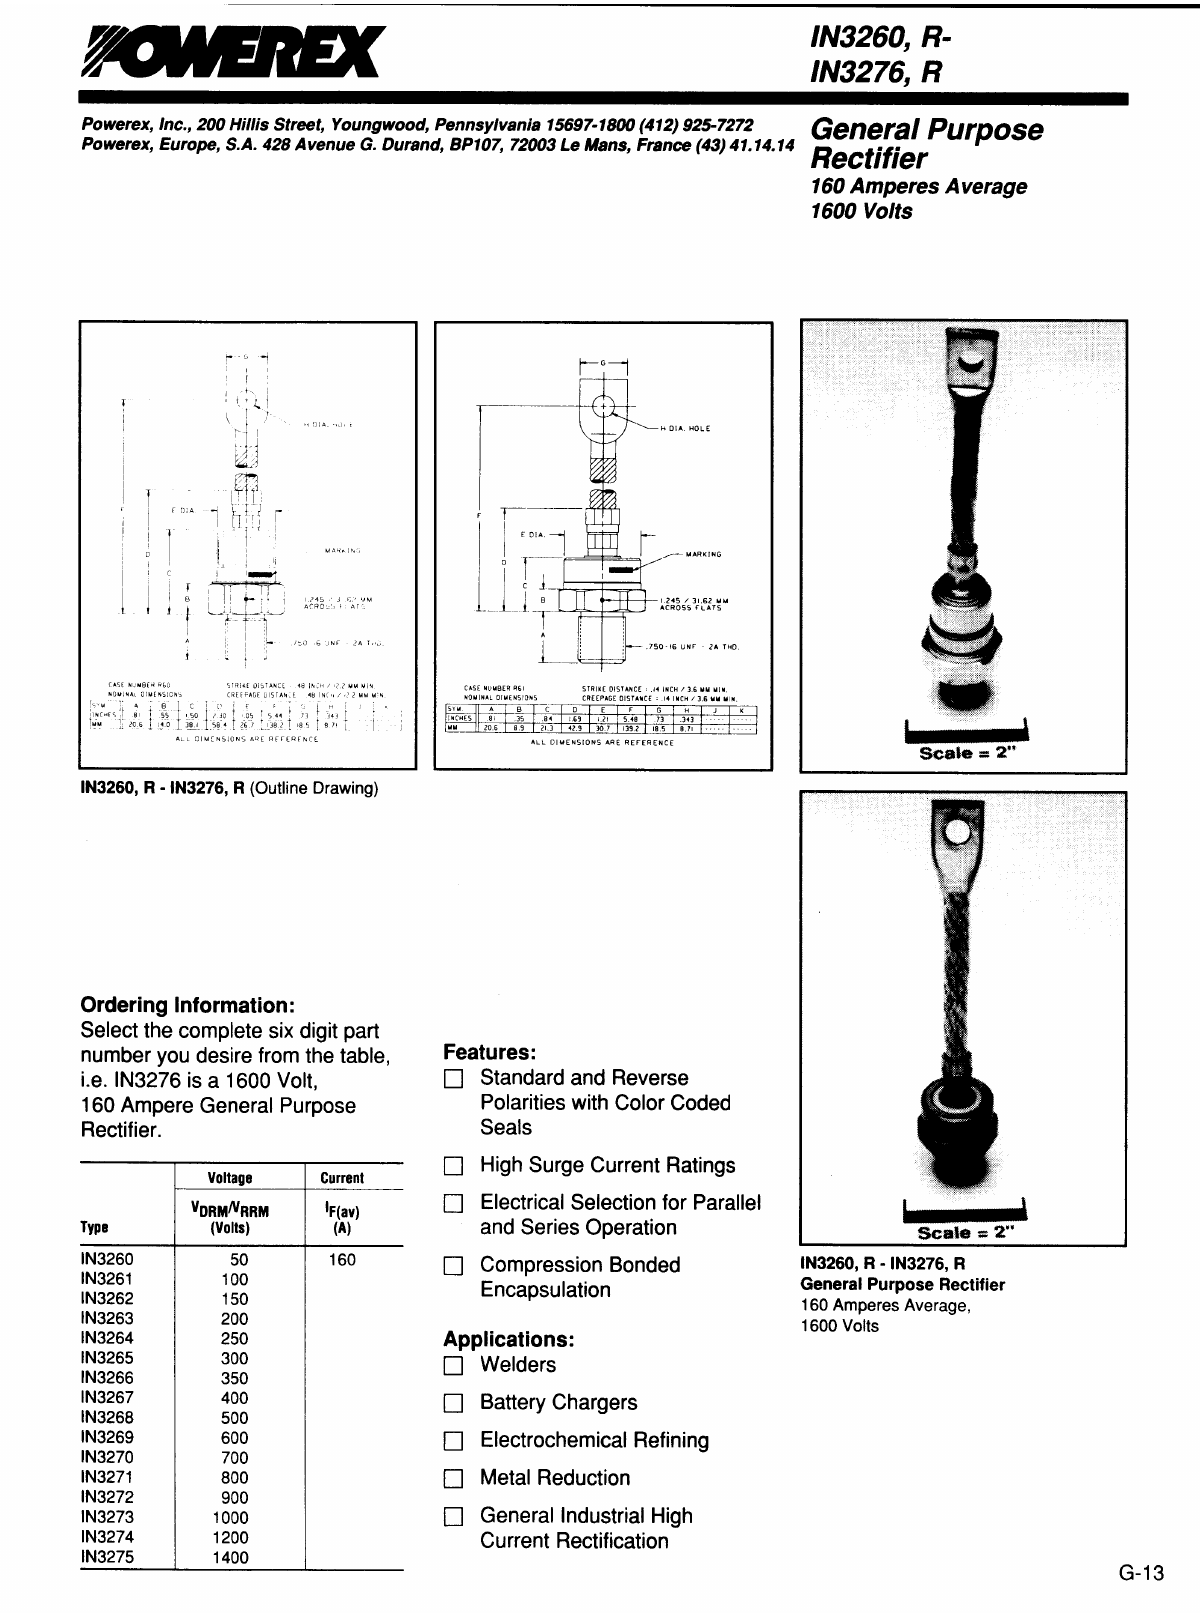 R-IN3262 datasheet